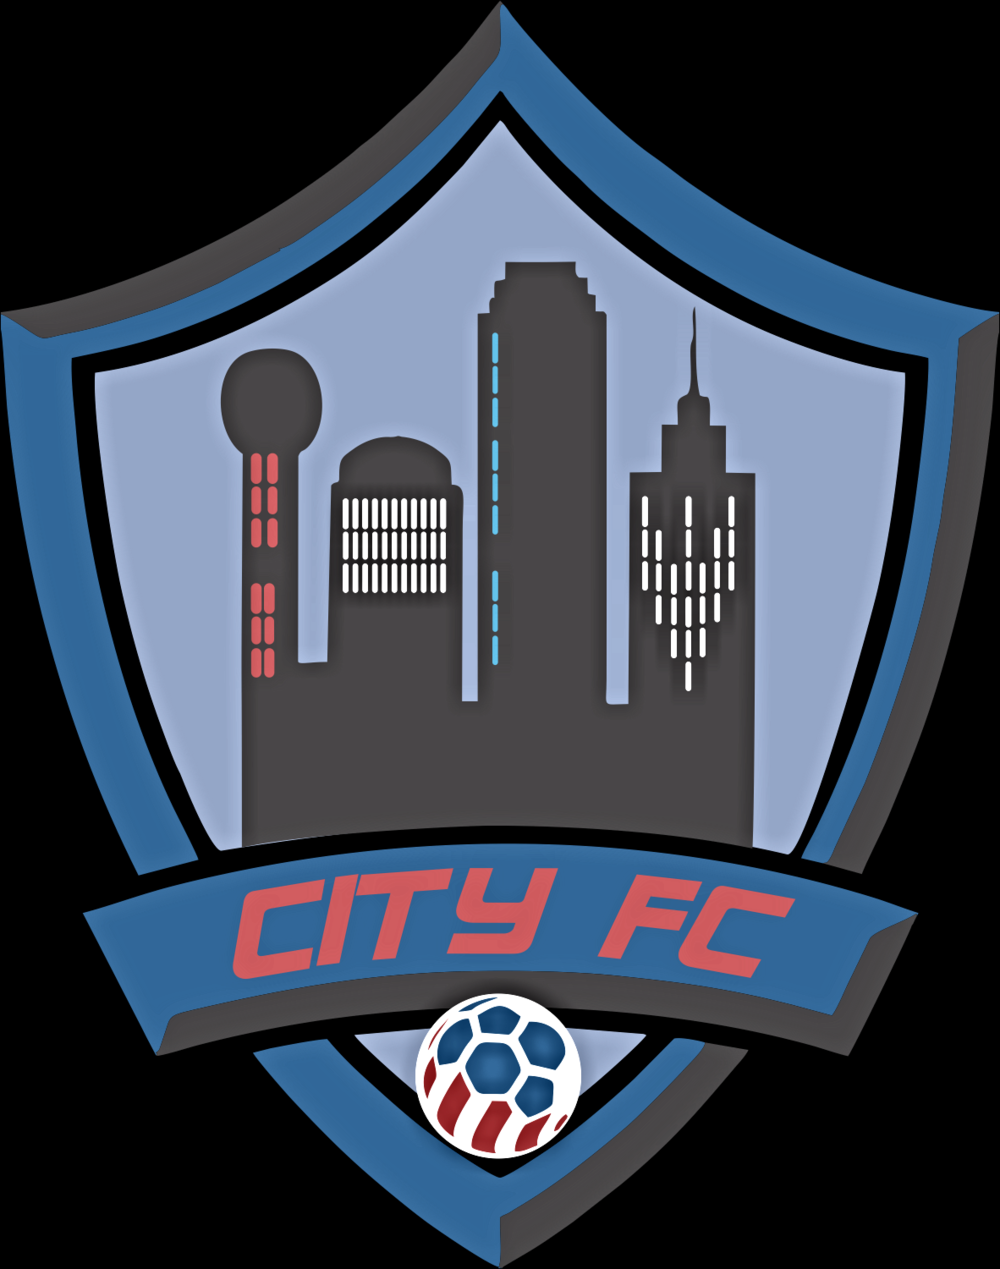 Click photo to enter CITY FC